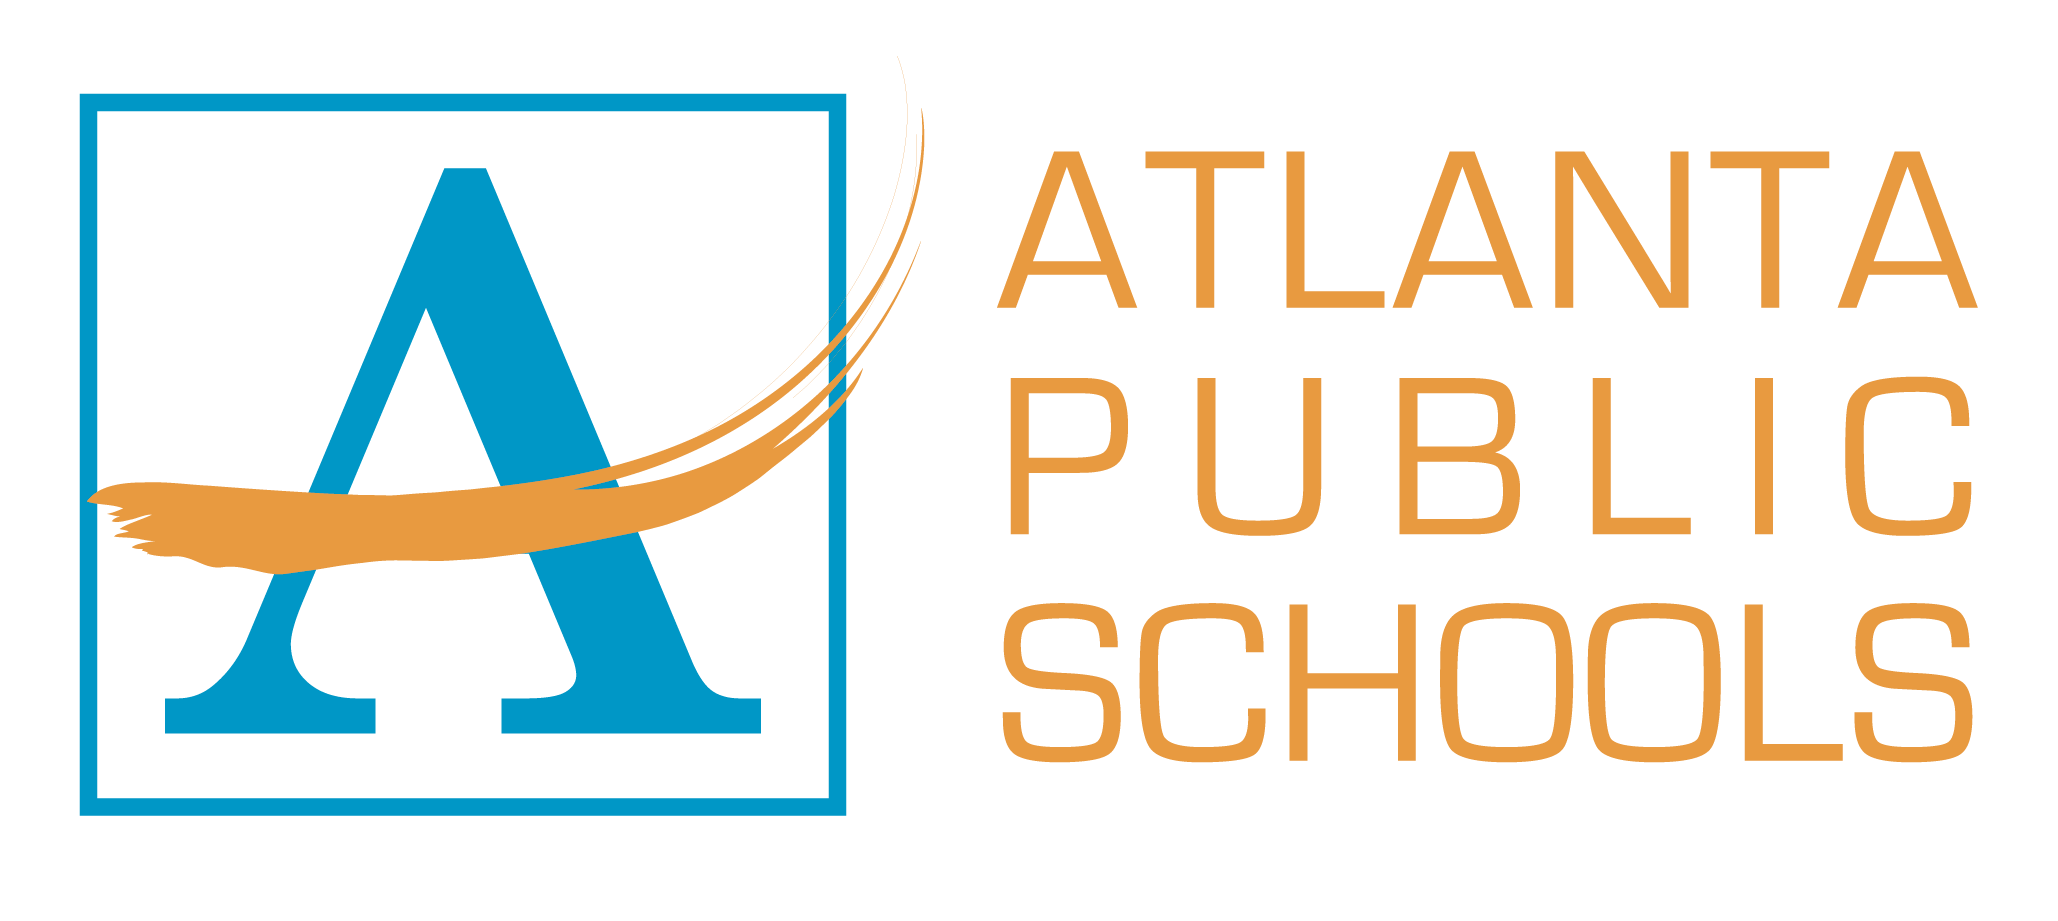 Communications & Public Engagement / APS Logos